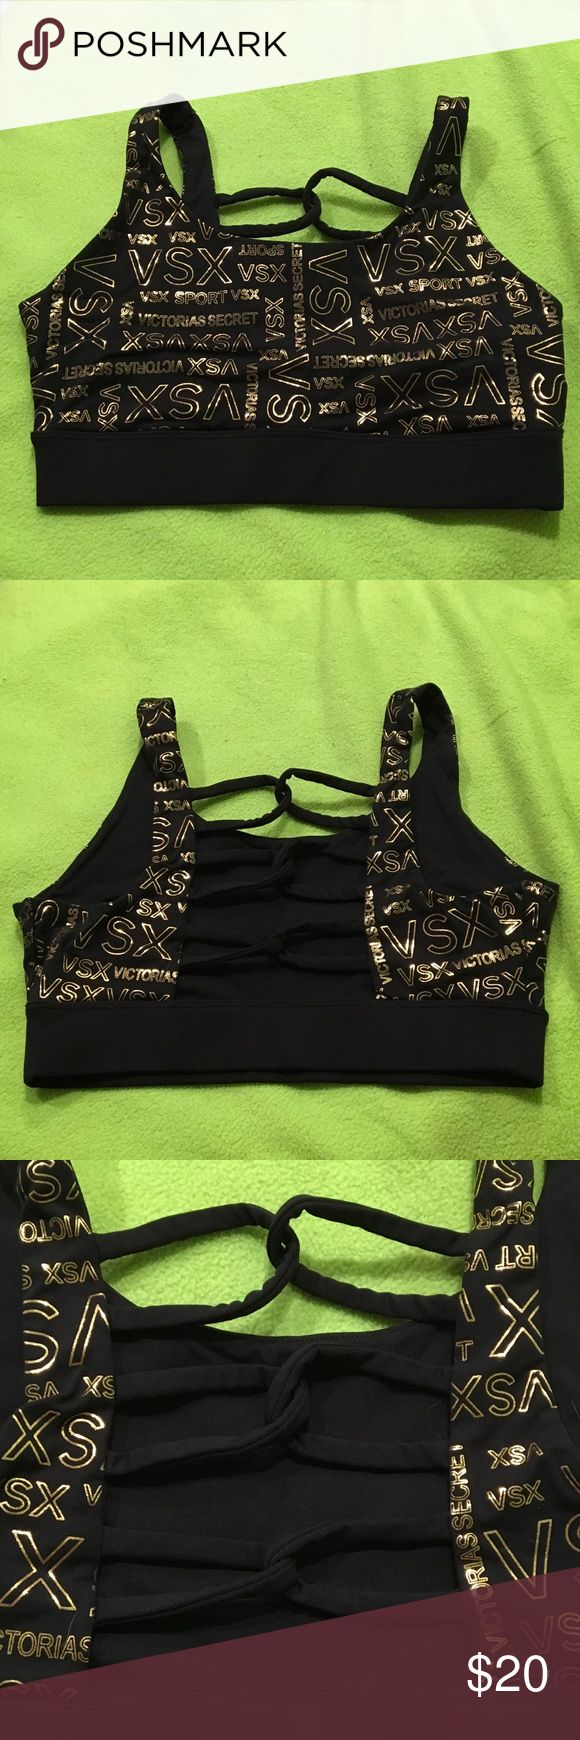 VSX Sexy Sports Bra Black sports bra with looped back (pictured) and gold shiny lettering all over. Worn three times in very good condition. Is tagged as a size medium but runs small so I have it listed as a small. Victoria's Secret Intimates & Sleepwear Bras